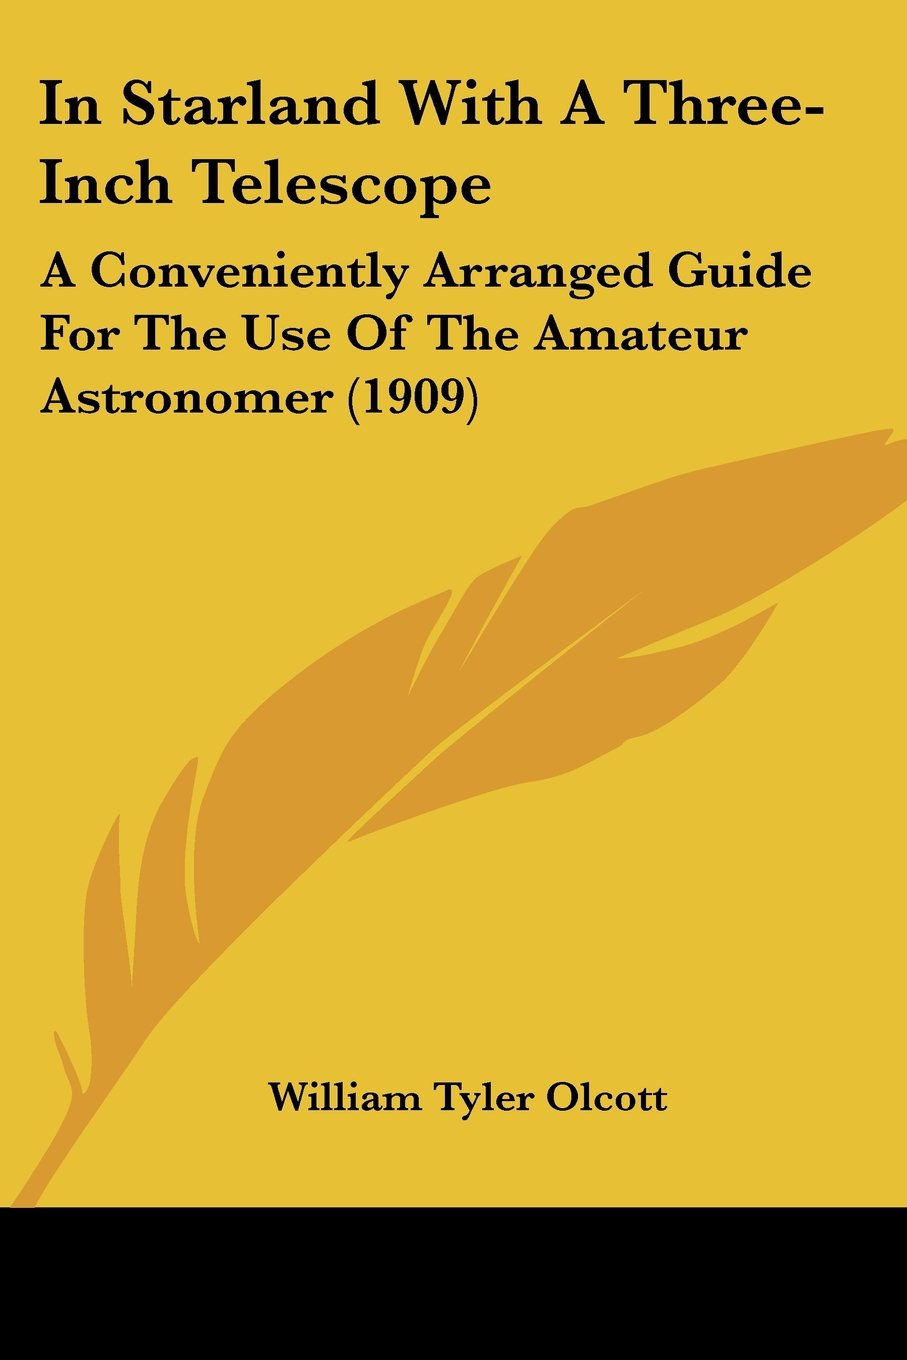 In Starland With A Three-Inch Telescope: A Conveniently Arranged Guide For The Use Of The Amateur Astronomer (1909) pdf